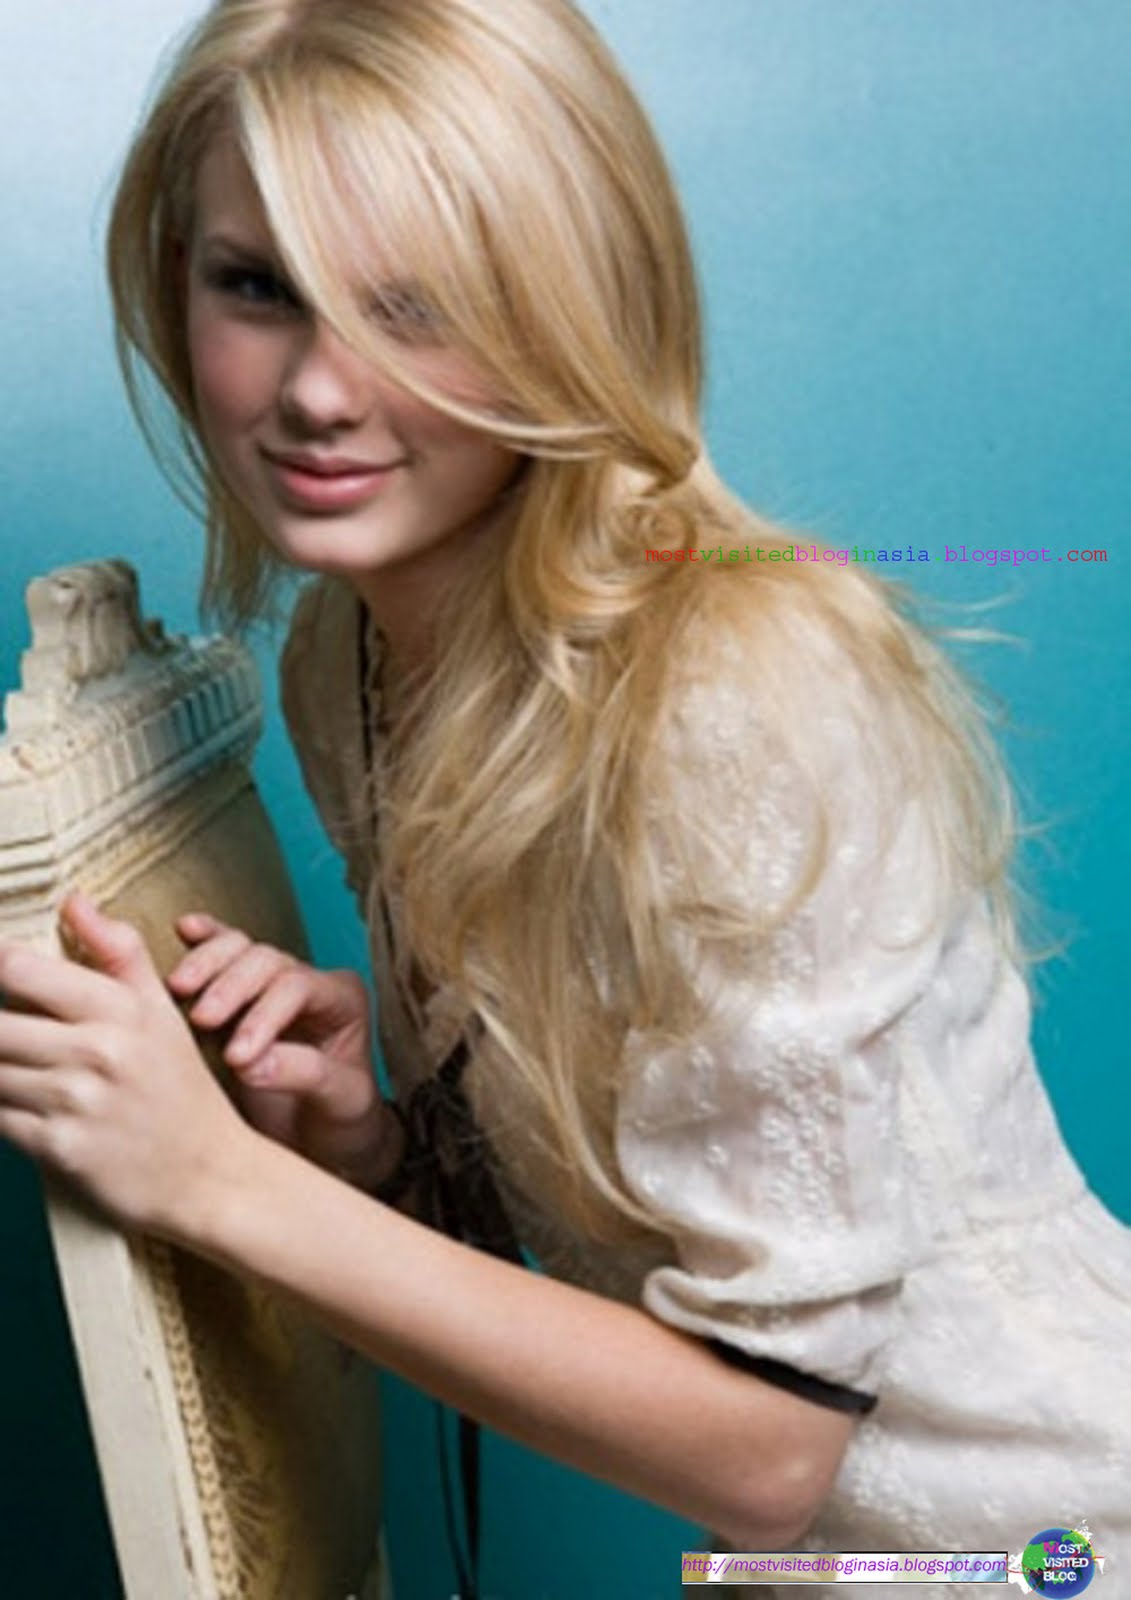 my favourite singer taylor swift essay 91 121 113 106 my favourite singer taylor swift essay